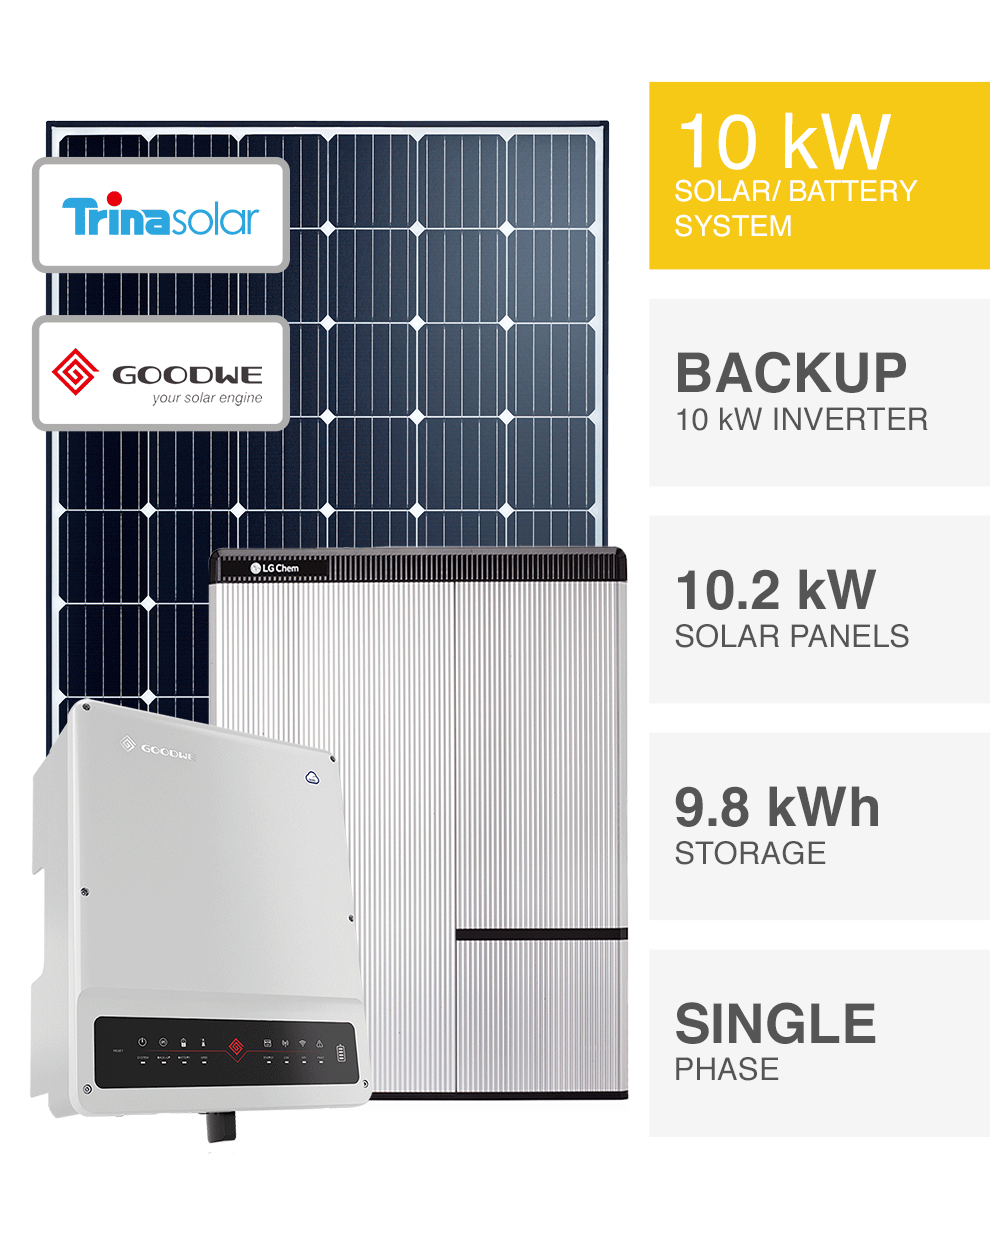 3-Phase 10kW Solar System with Battery Backup, (installed